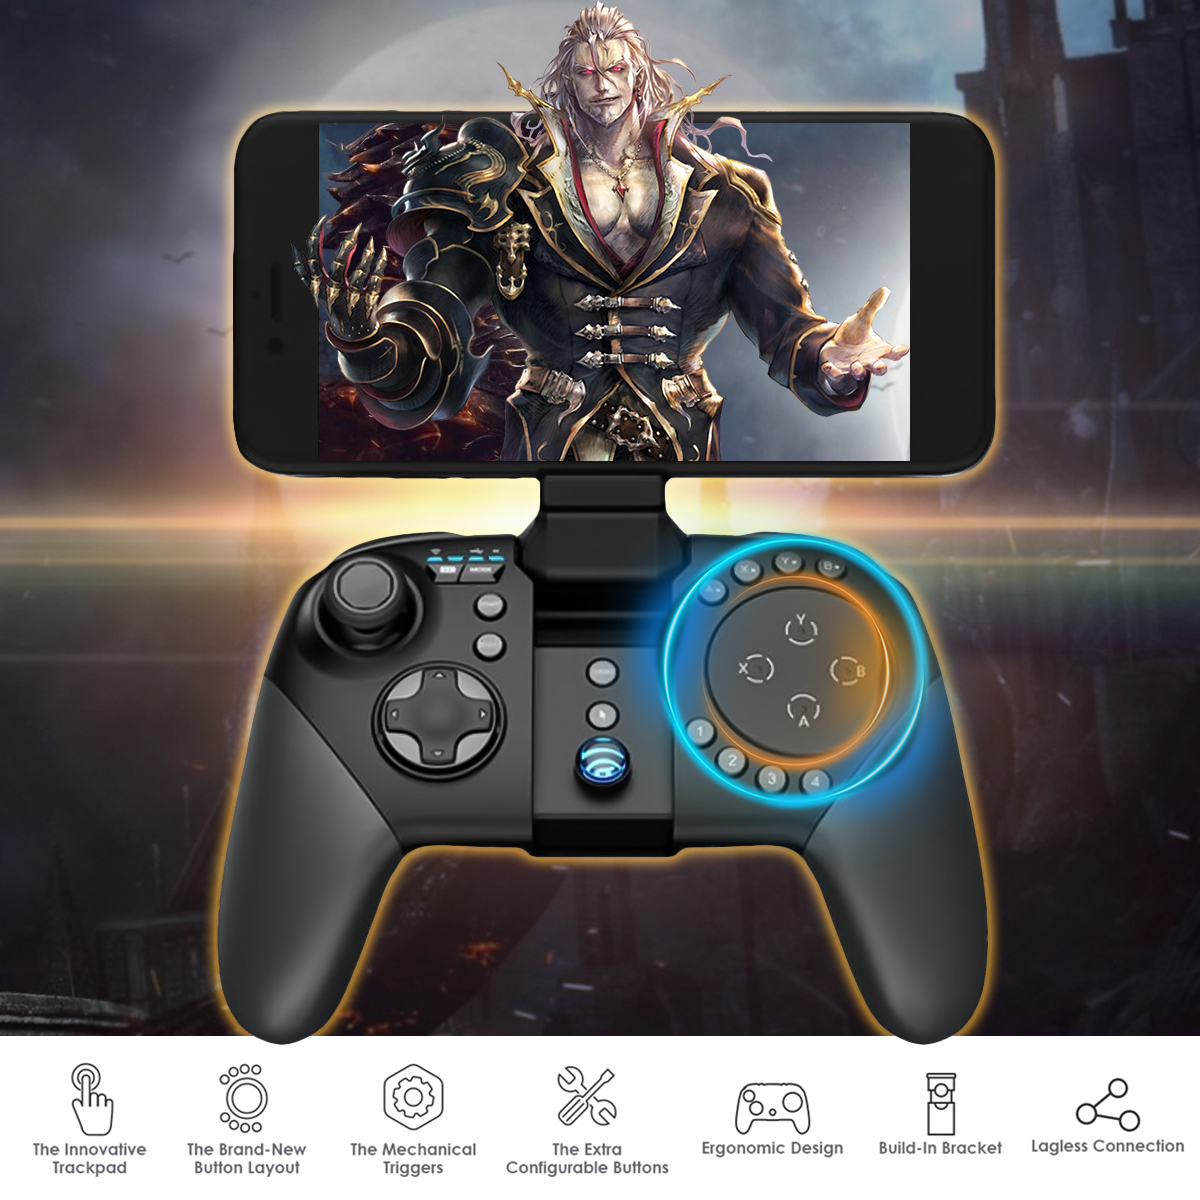 2Pcs Gamesir G5 bluetooth Wireless Trackpad Touchpad Gamepad Mouse Keyboard Converter with Phone Clip for iOS Android Chinese Version